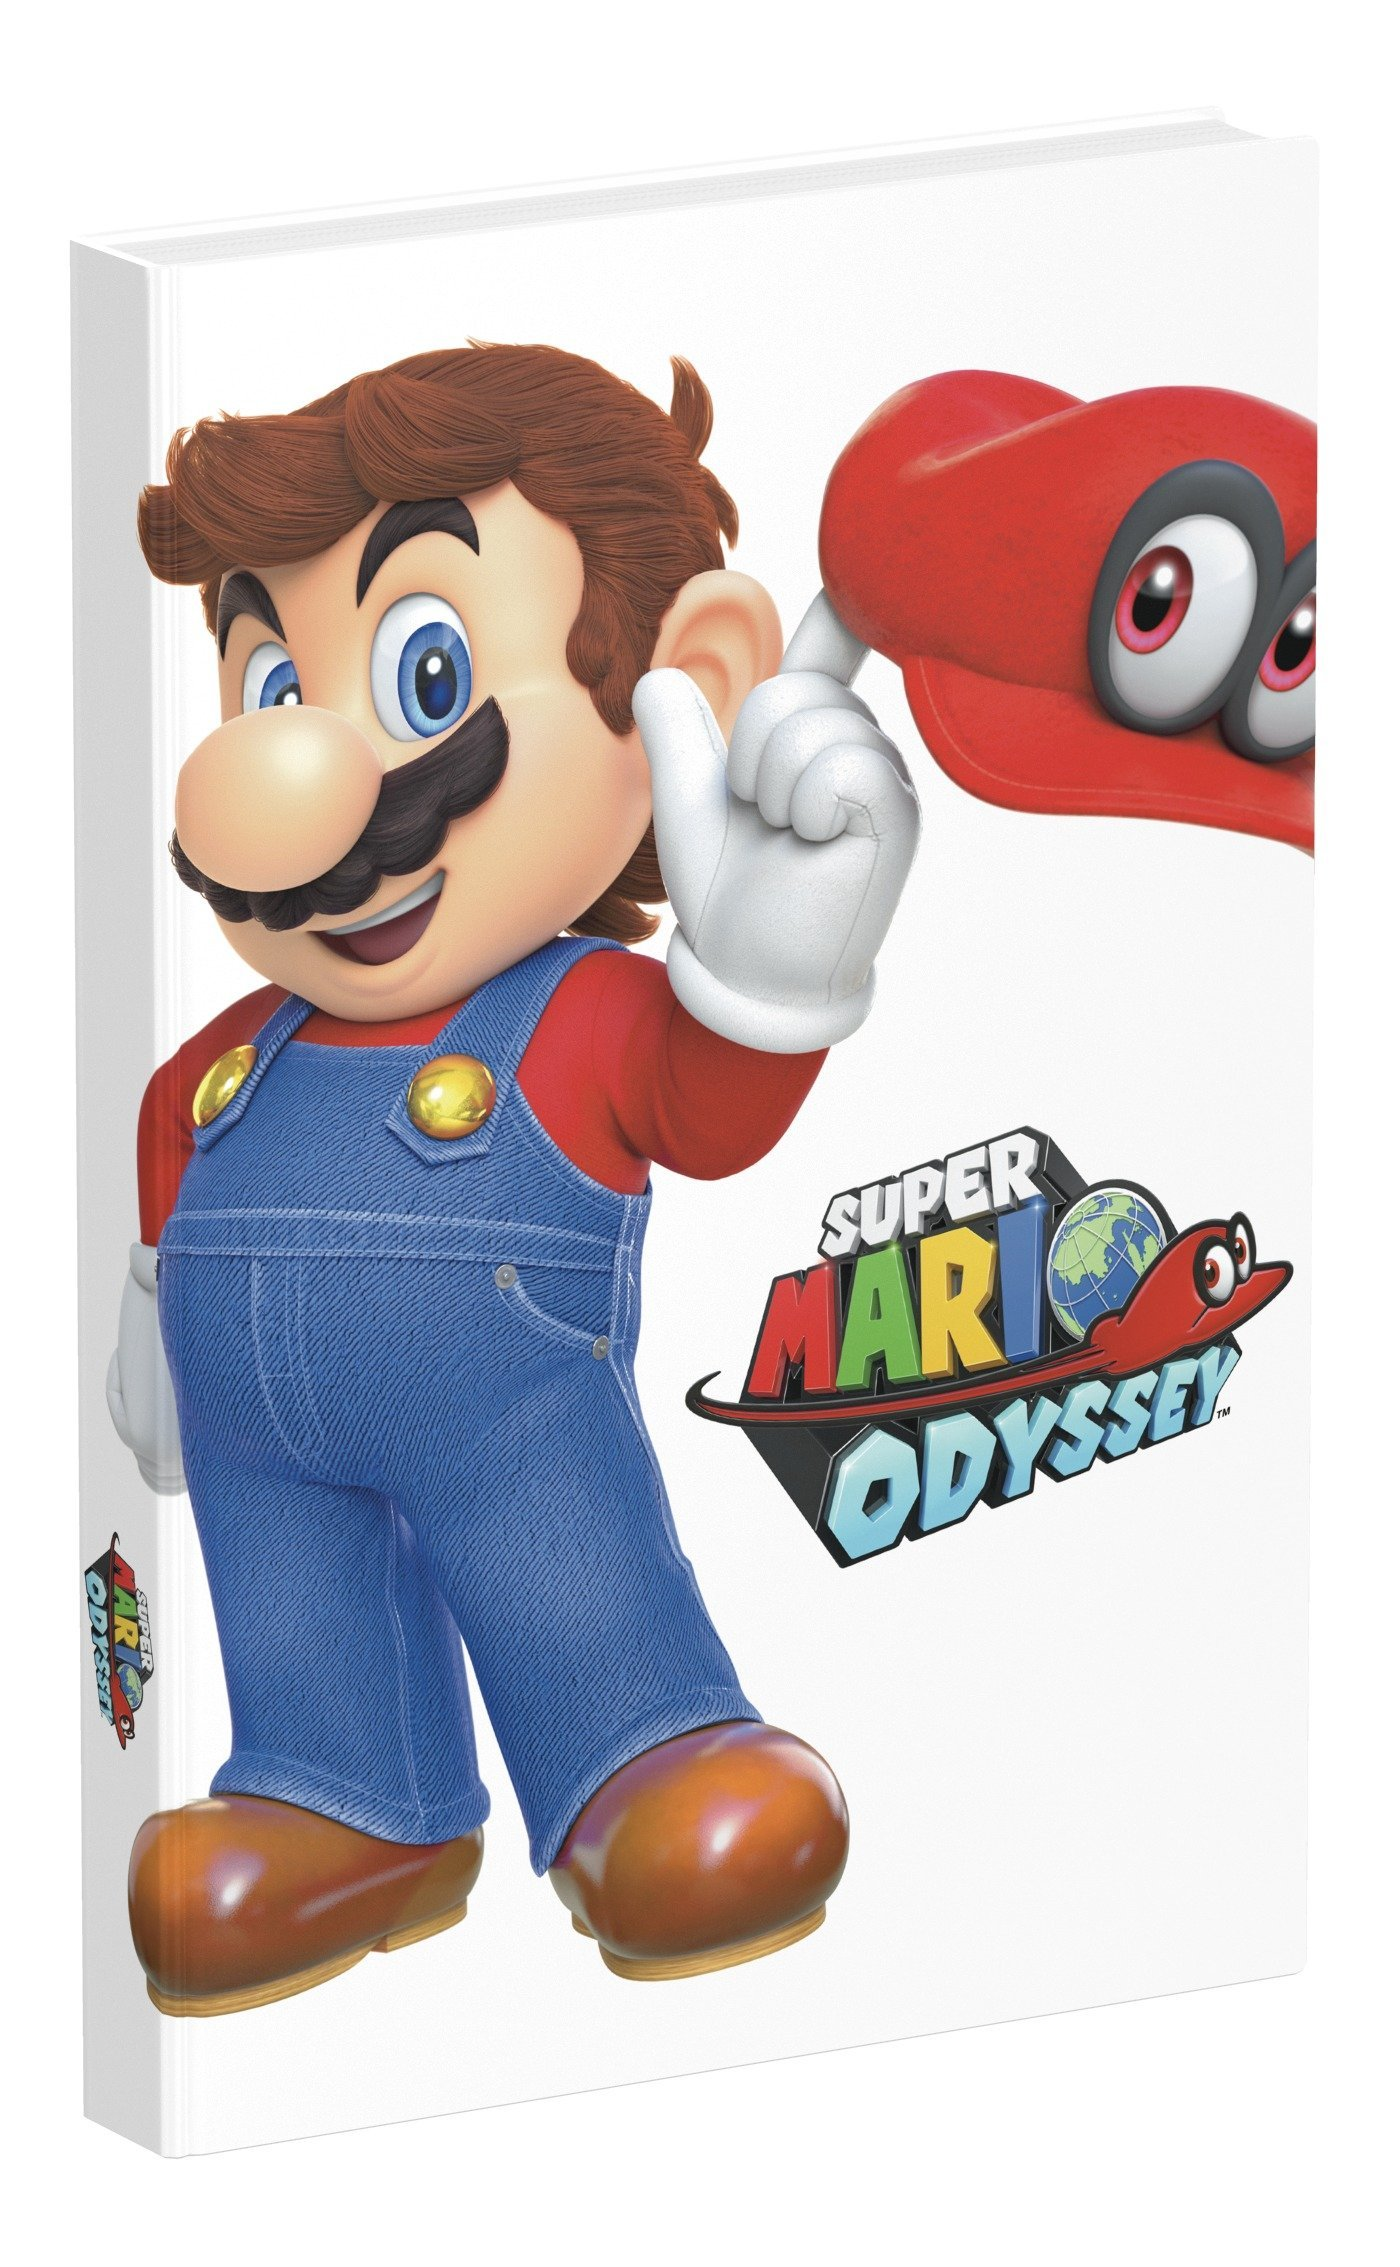 Super Mario Odyssey (Collectors Edition): Amazon.es: Prima Games ...